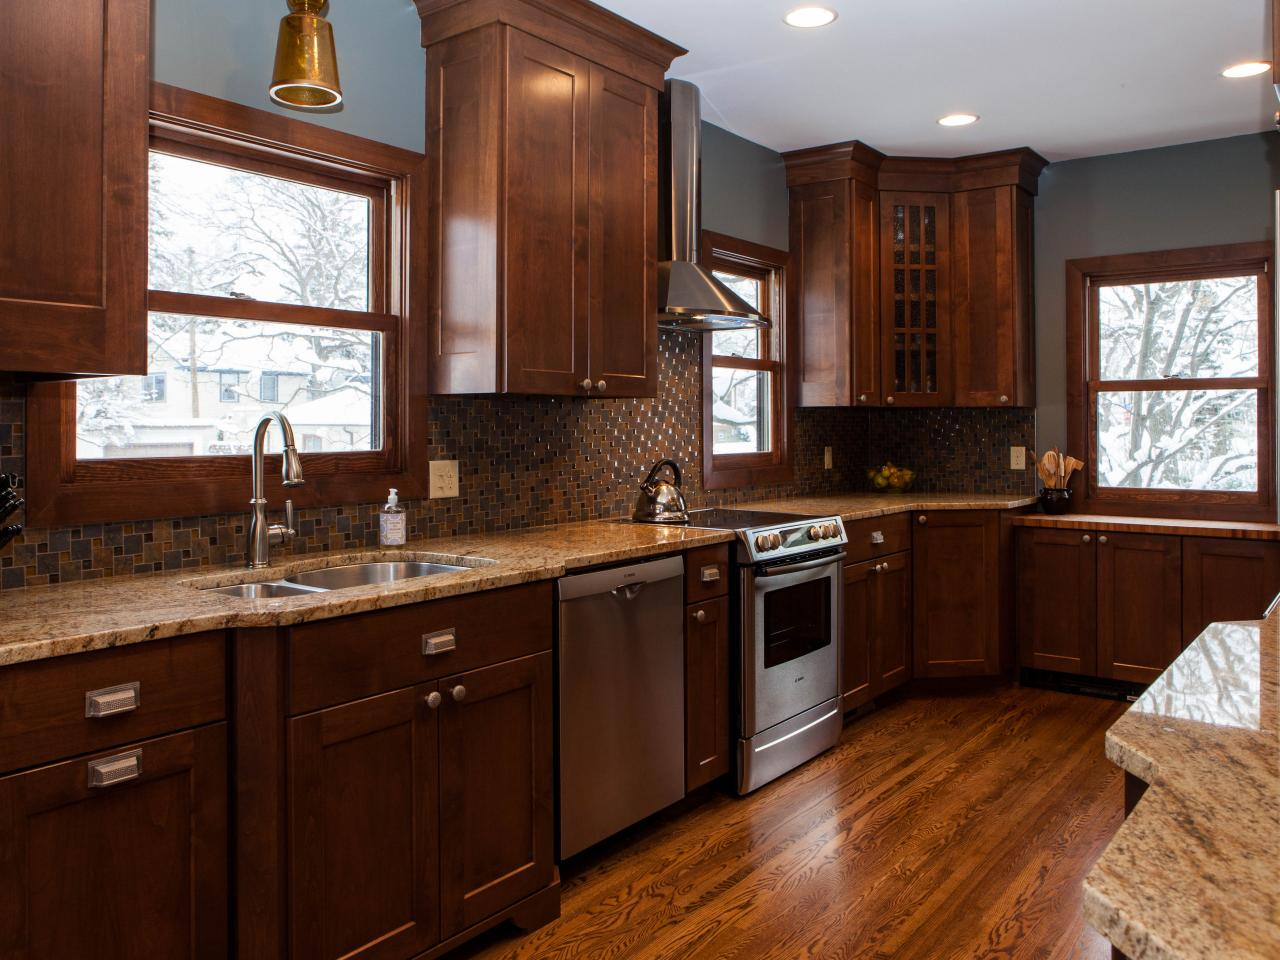 craftsman kitchen with dark wood cabinetry the subtle use of finishes